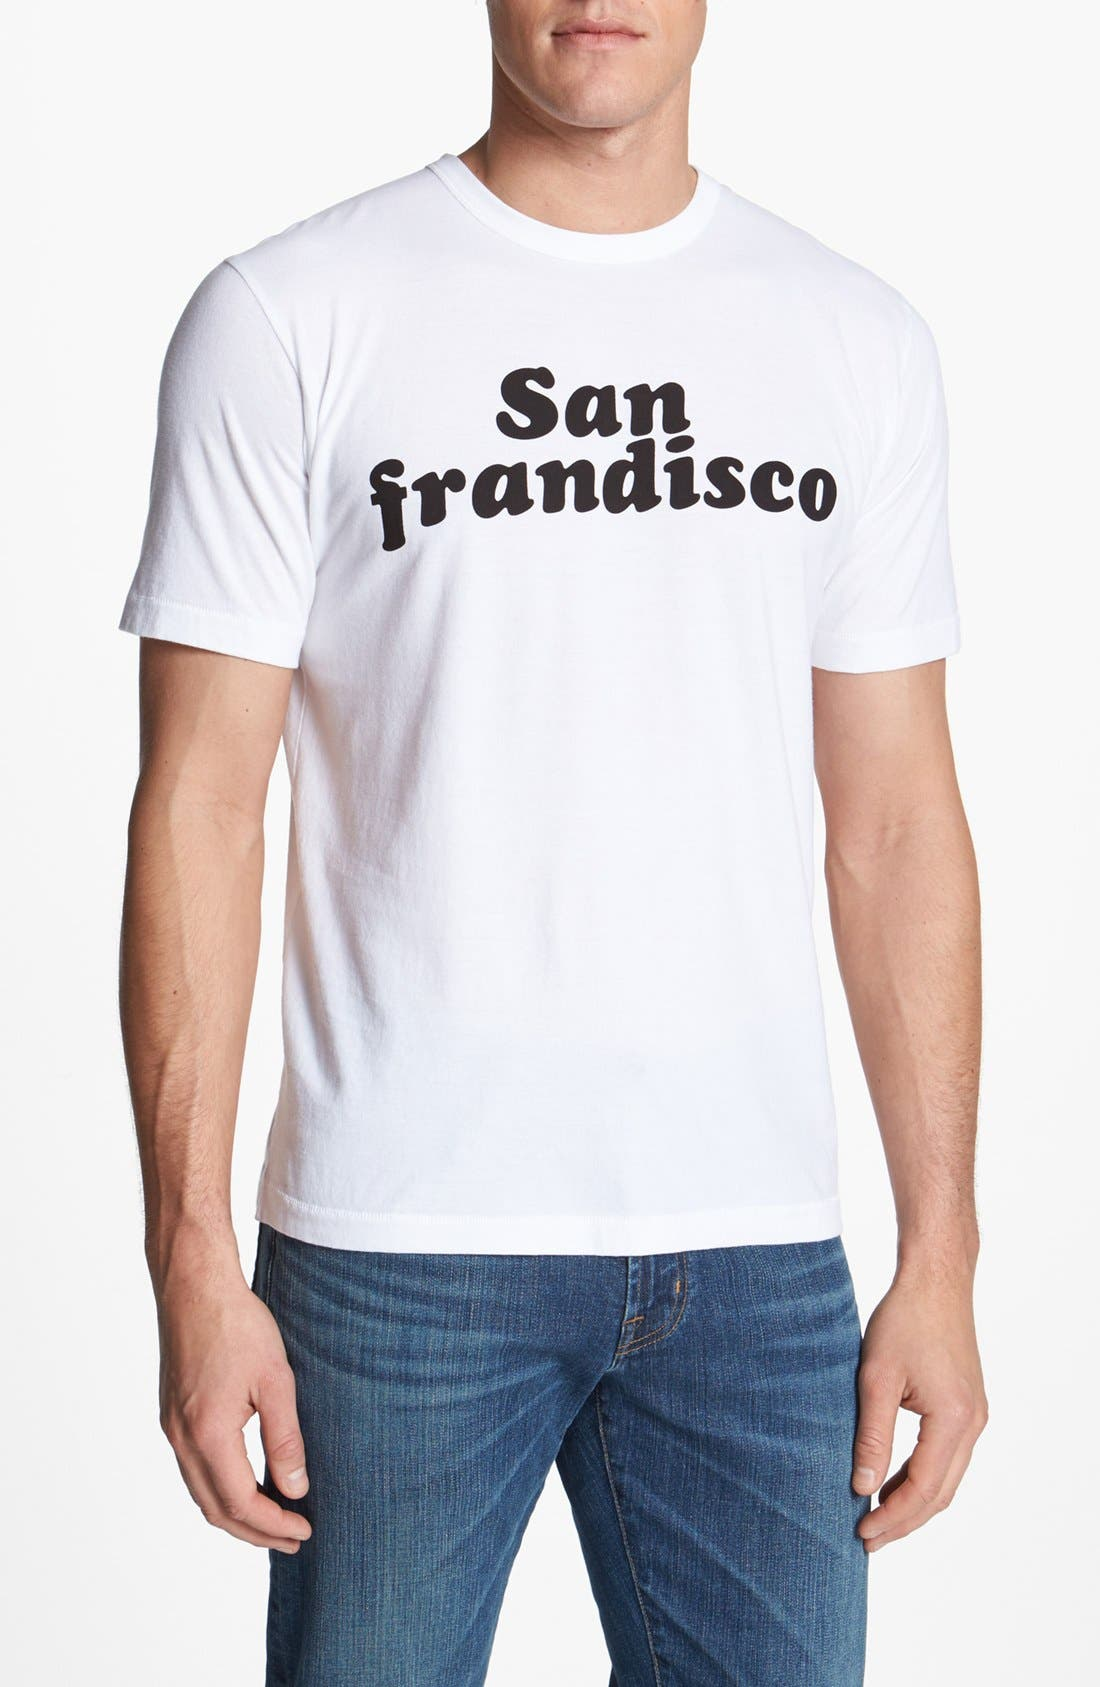 Alternate Image 1 Selected - French Connection 'San Frandisco' T-Shirt